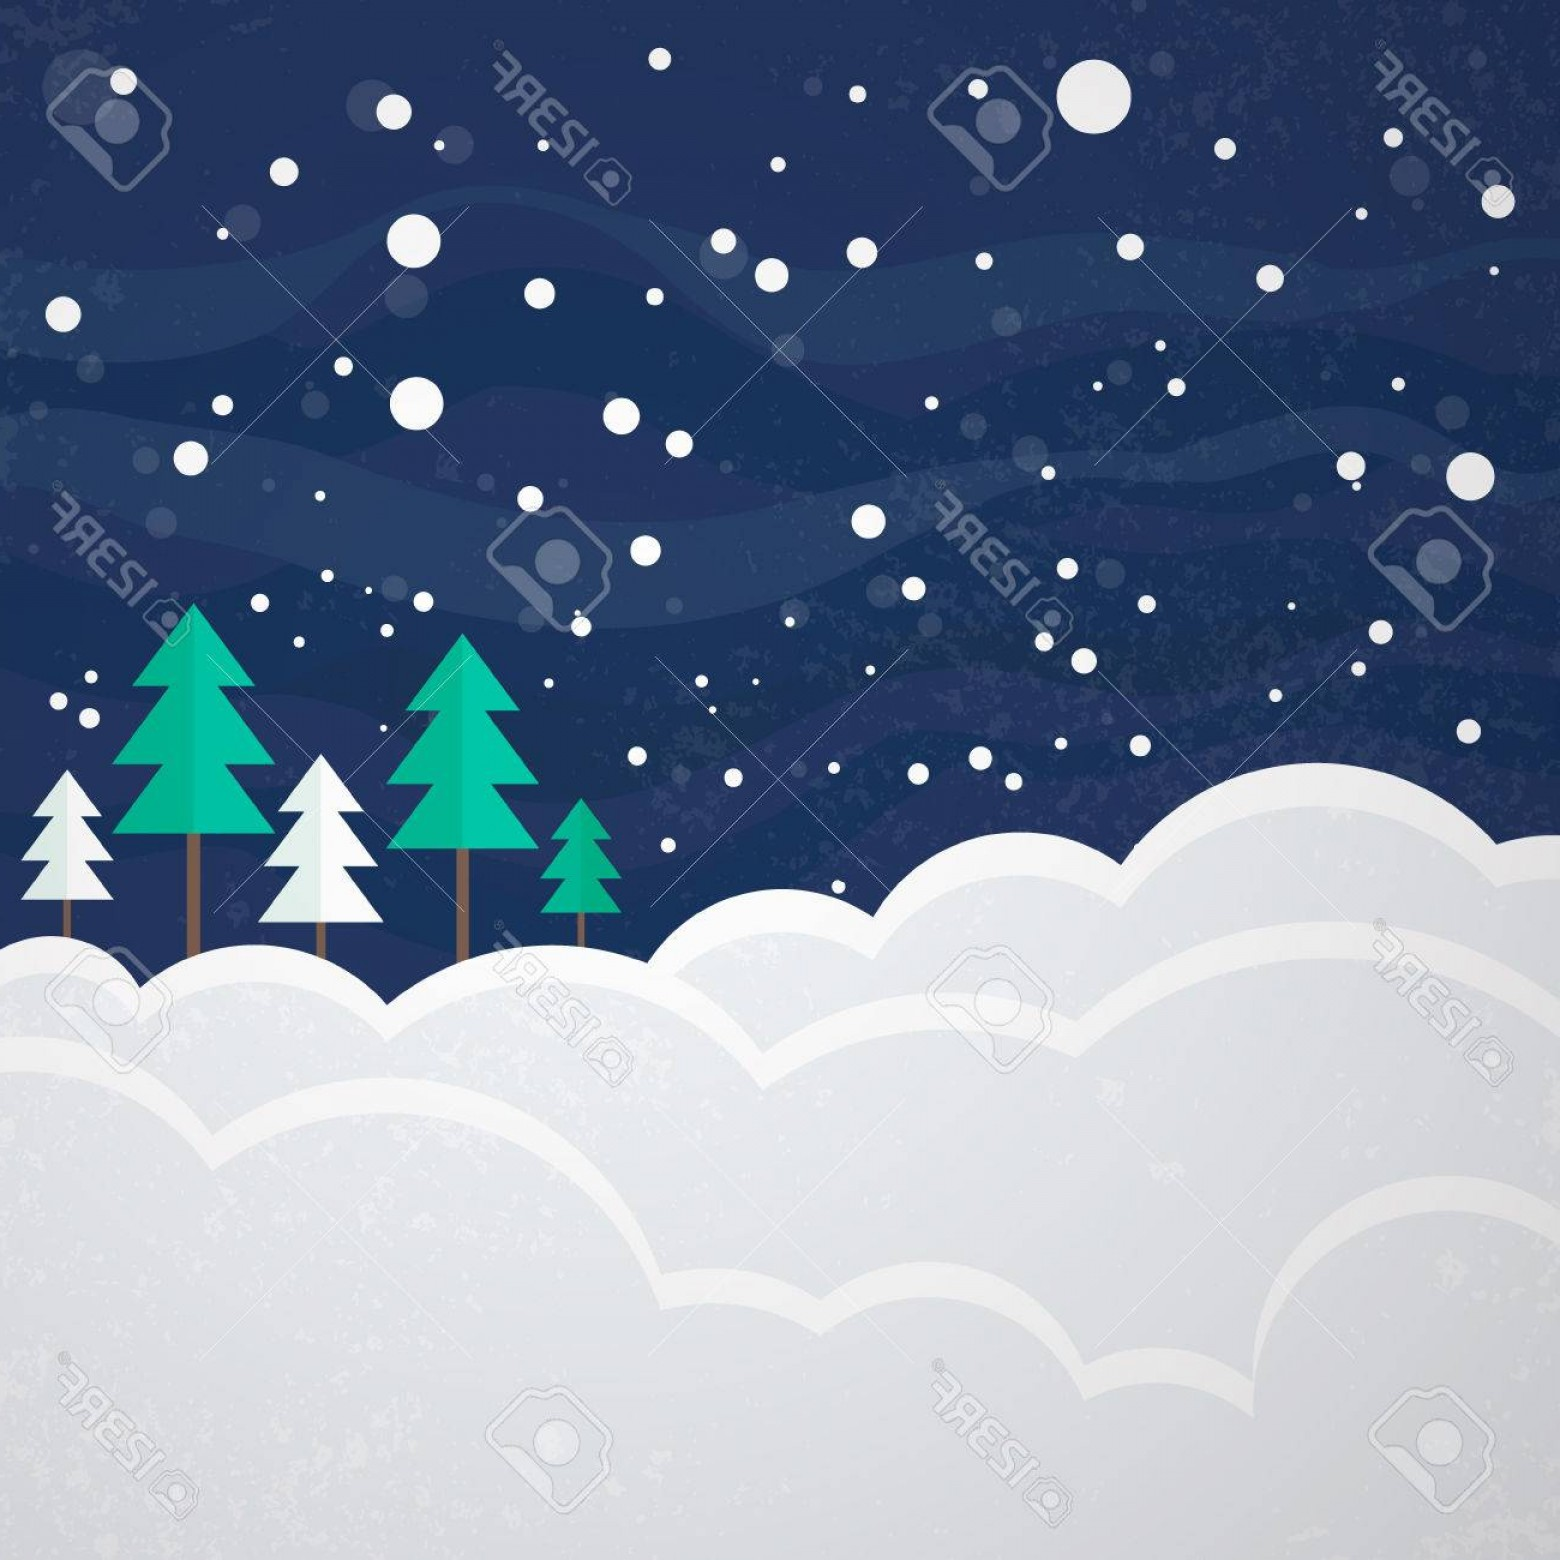 Free Winter Vector: Photostock Vector Winter Vector Card Design Christmas Template With Trees And Snow Xmas Background Snowy Scene With Na